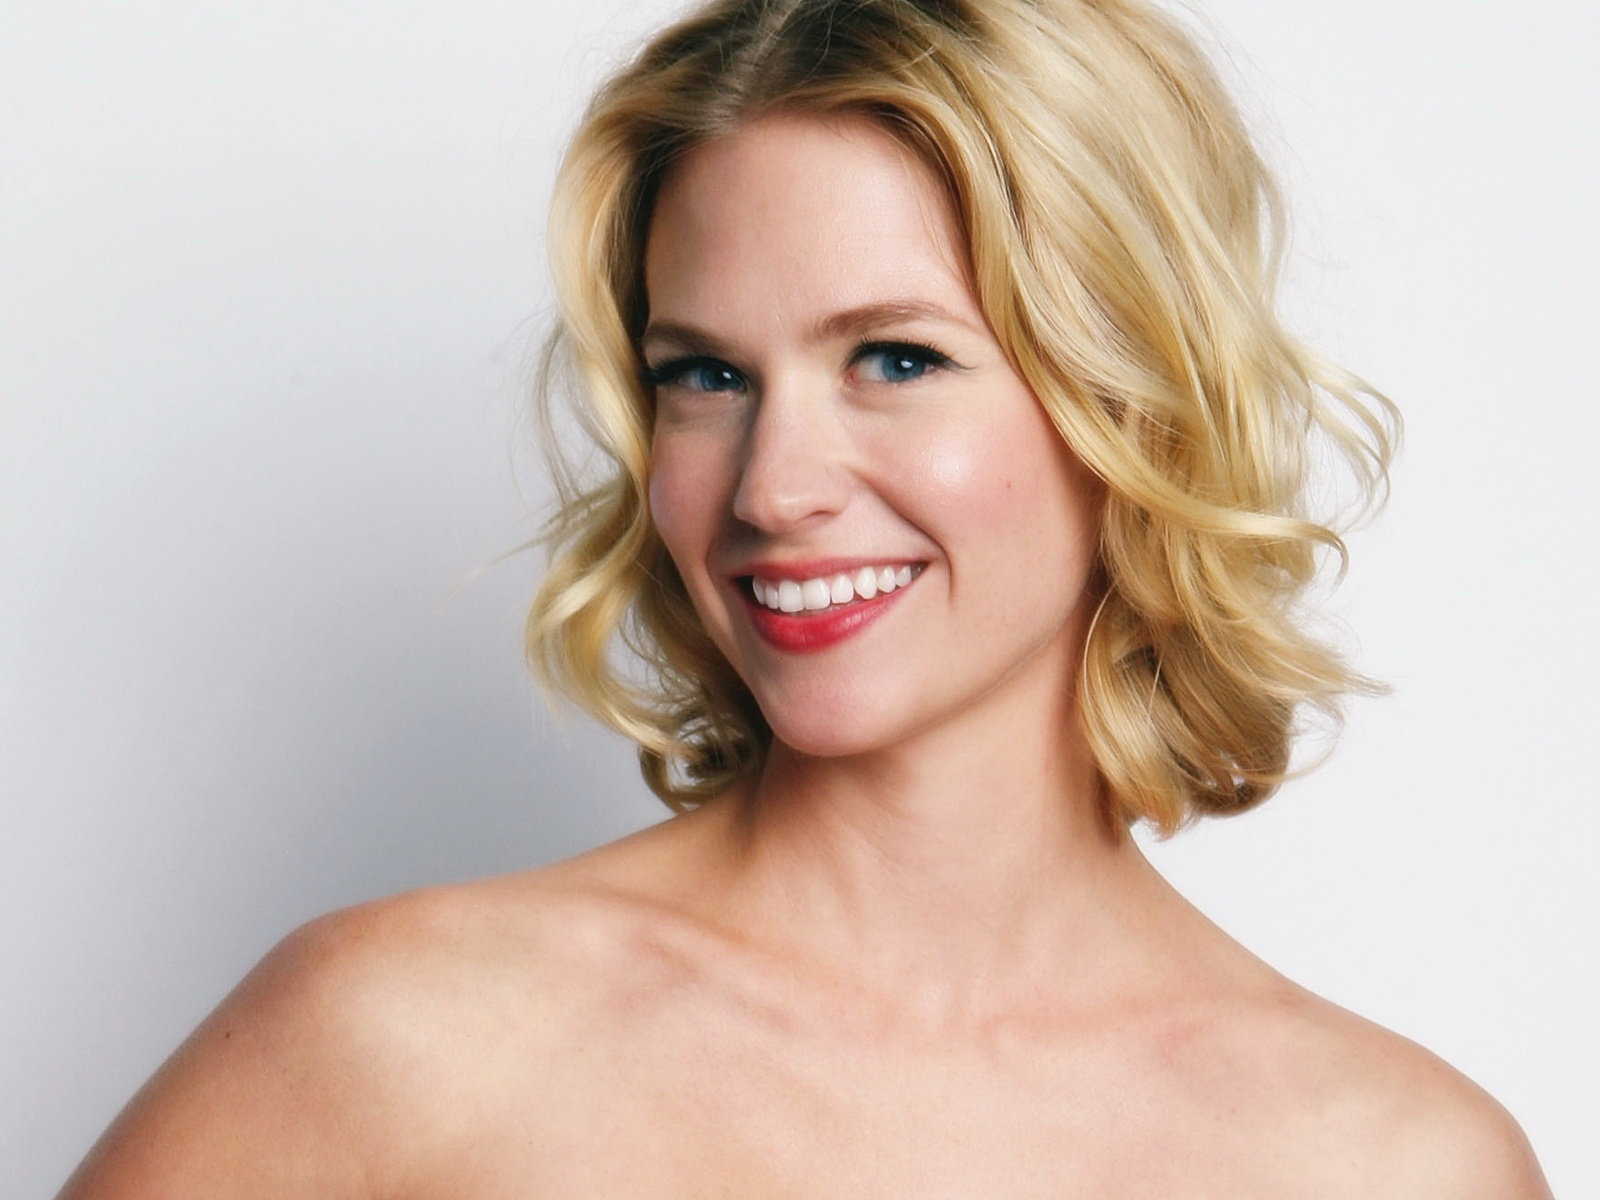 /AAAAAAAAEuM/A4zDwiRCJl4/s1600/january Jones Mad Men A9dc0 Wallpaper